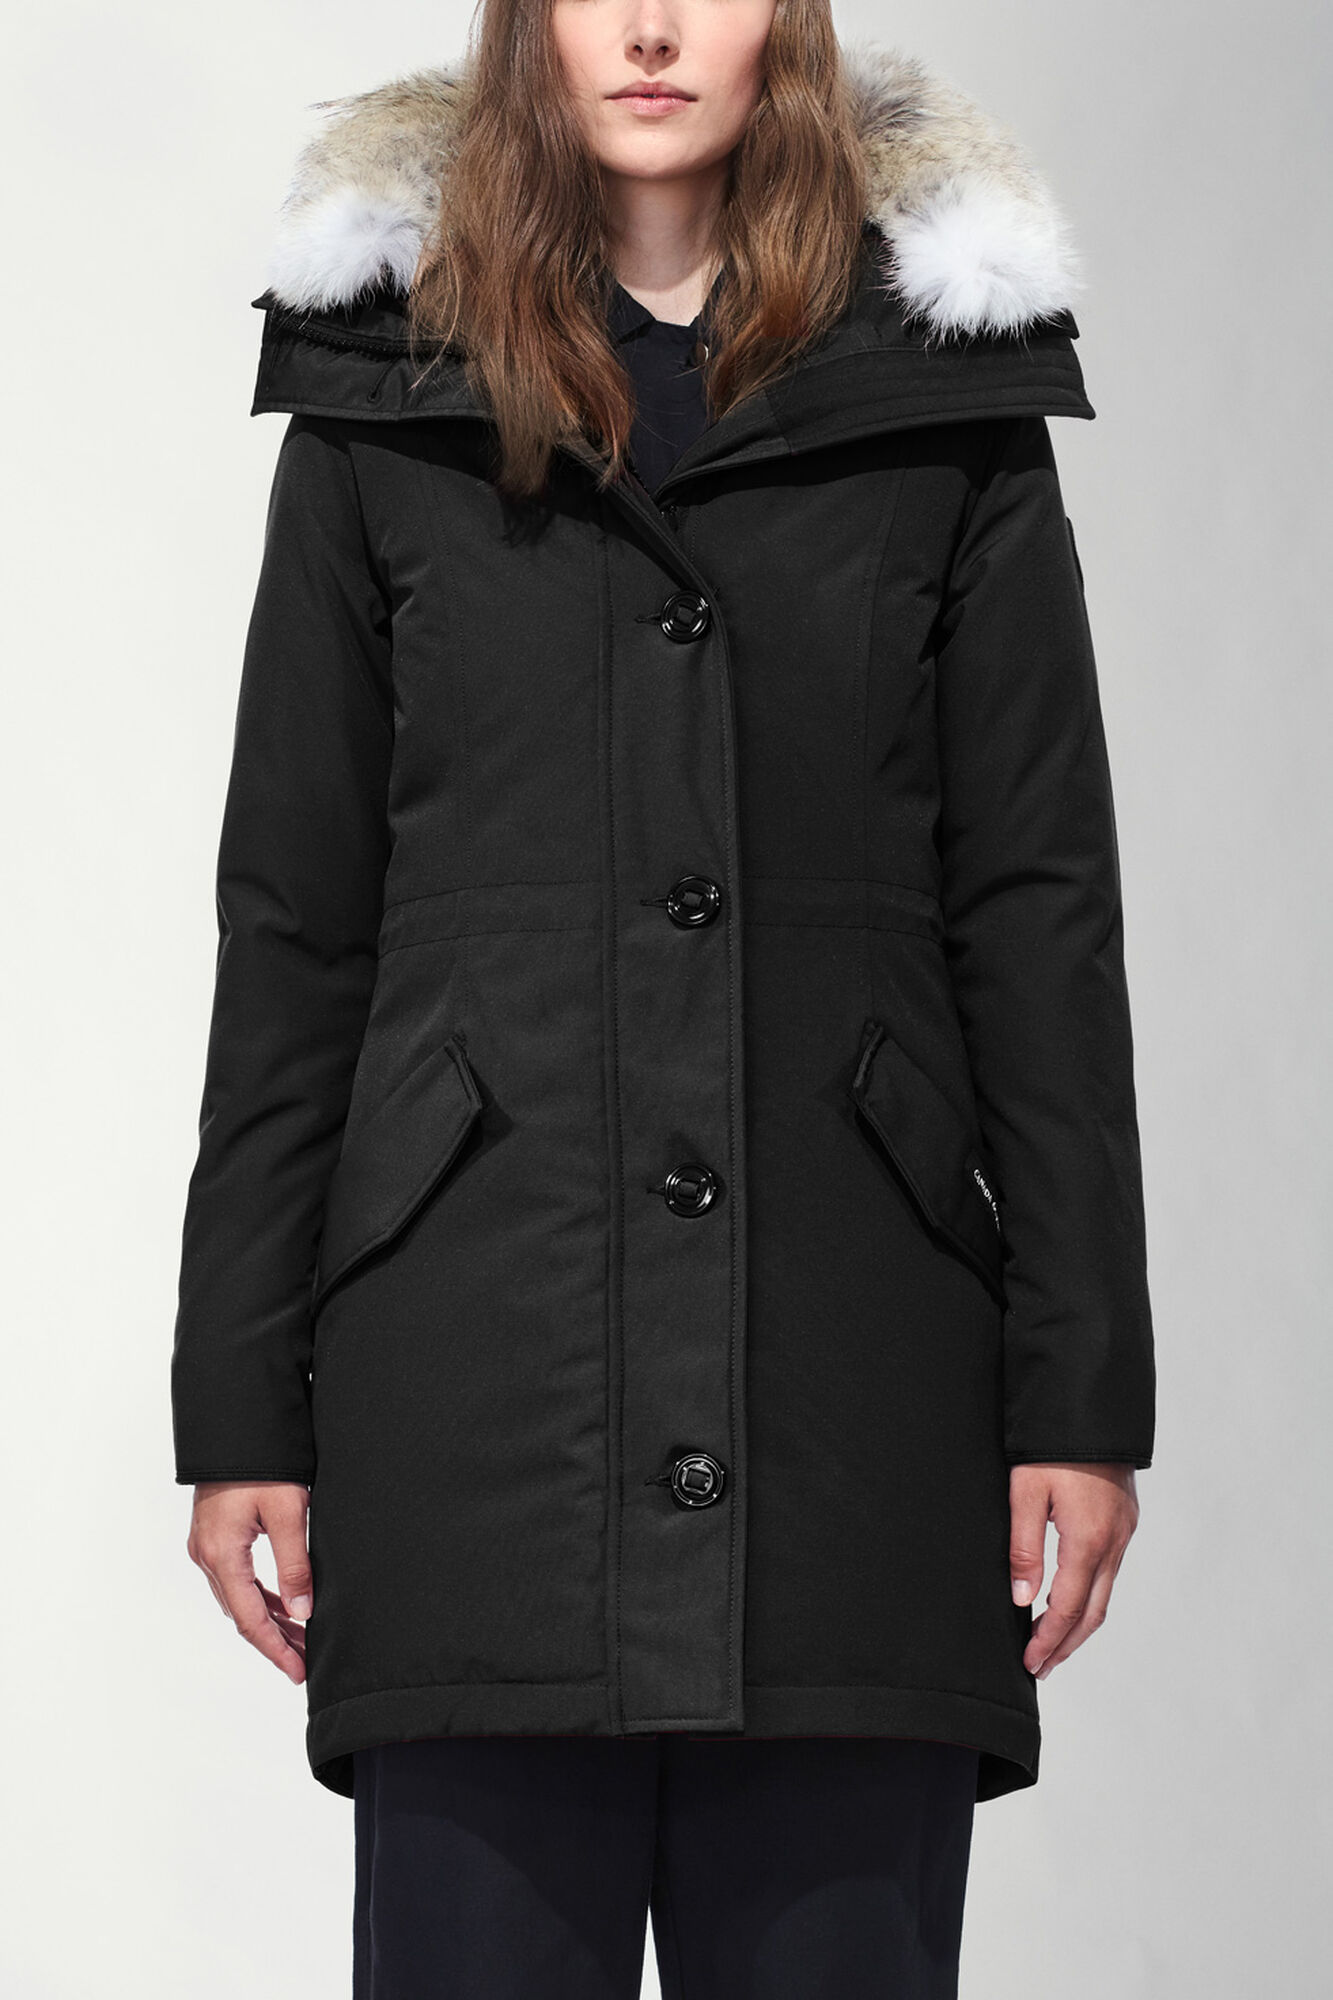 Canada Goose toronto online price - Women's Parkas | Expedition Mountaineer | Canada Goose?